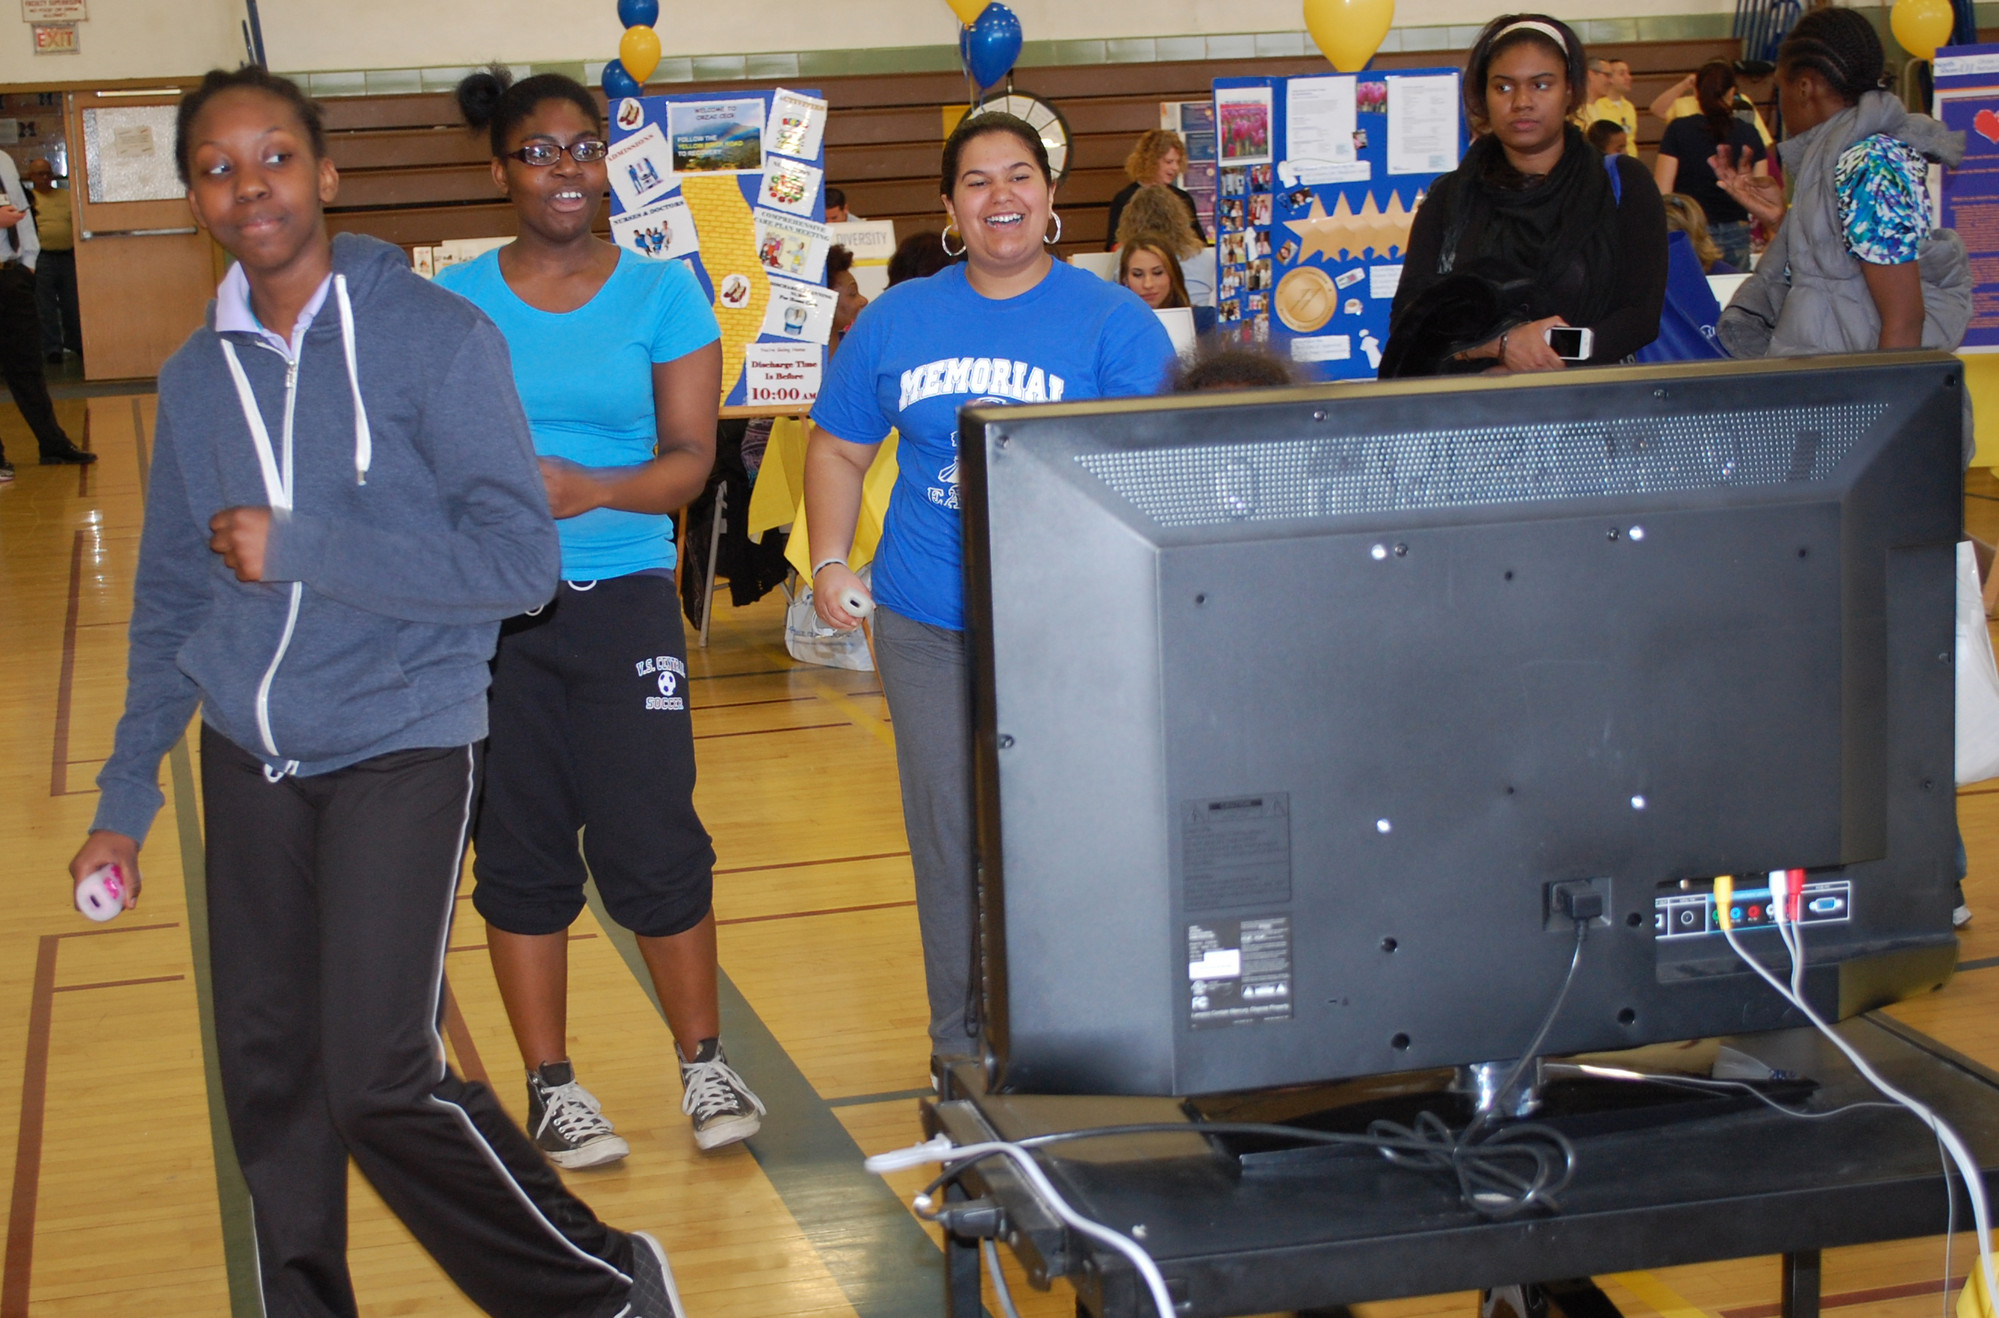 Visitors learned how the Nintendo Wii is used as a rehabilitation tool at the neighboring Orzac rehab center.